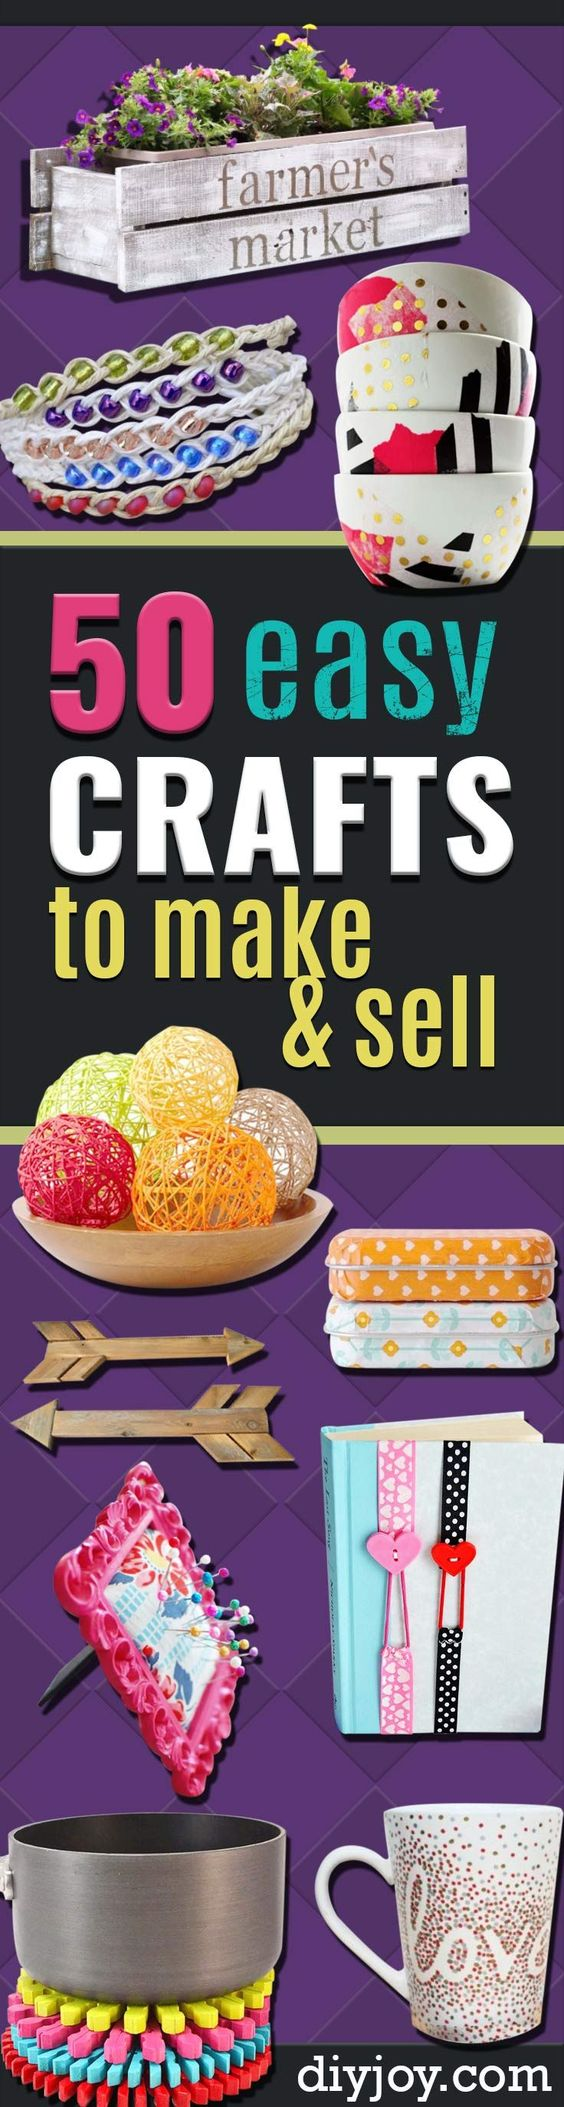 good craft ideas to sell 50 easy crafts to make and sell craft fairs 6644